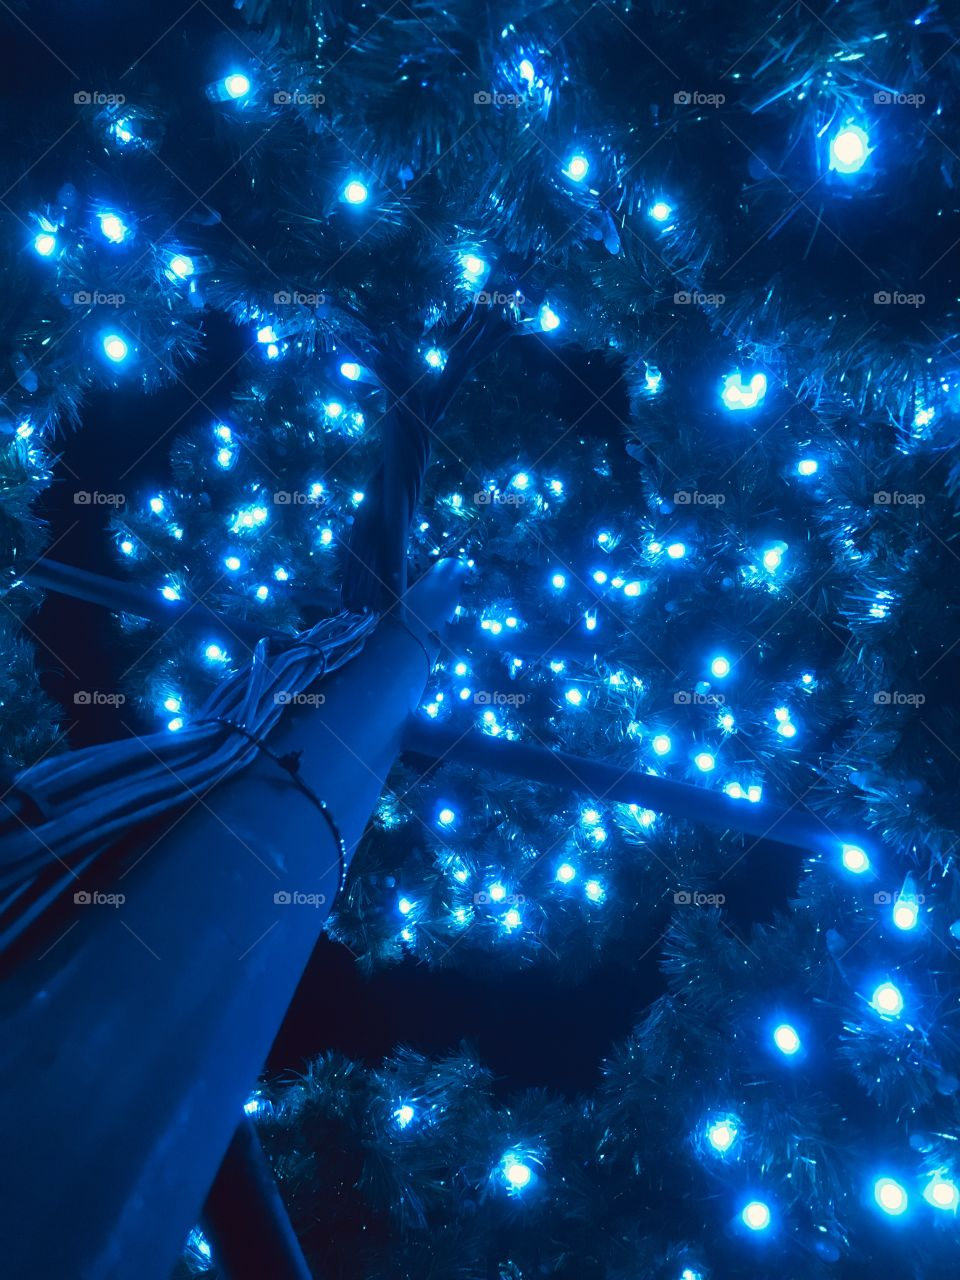 Spiraling blue Christmas lights from underneath 🎄